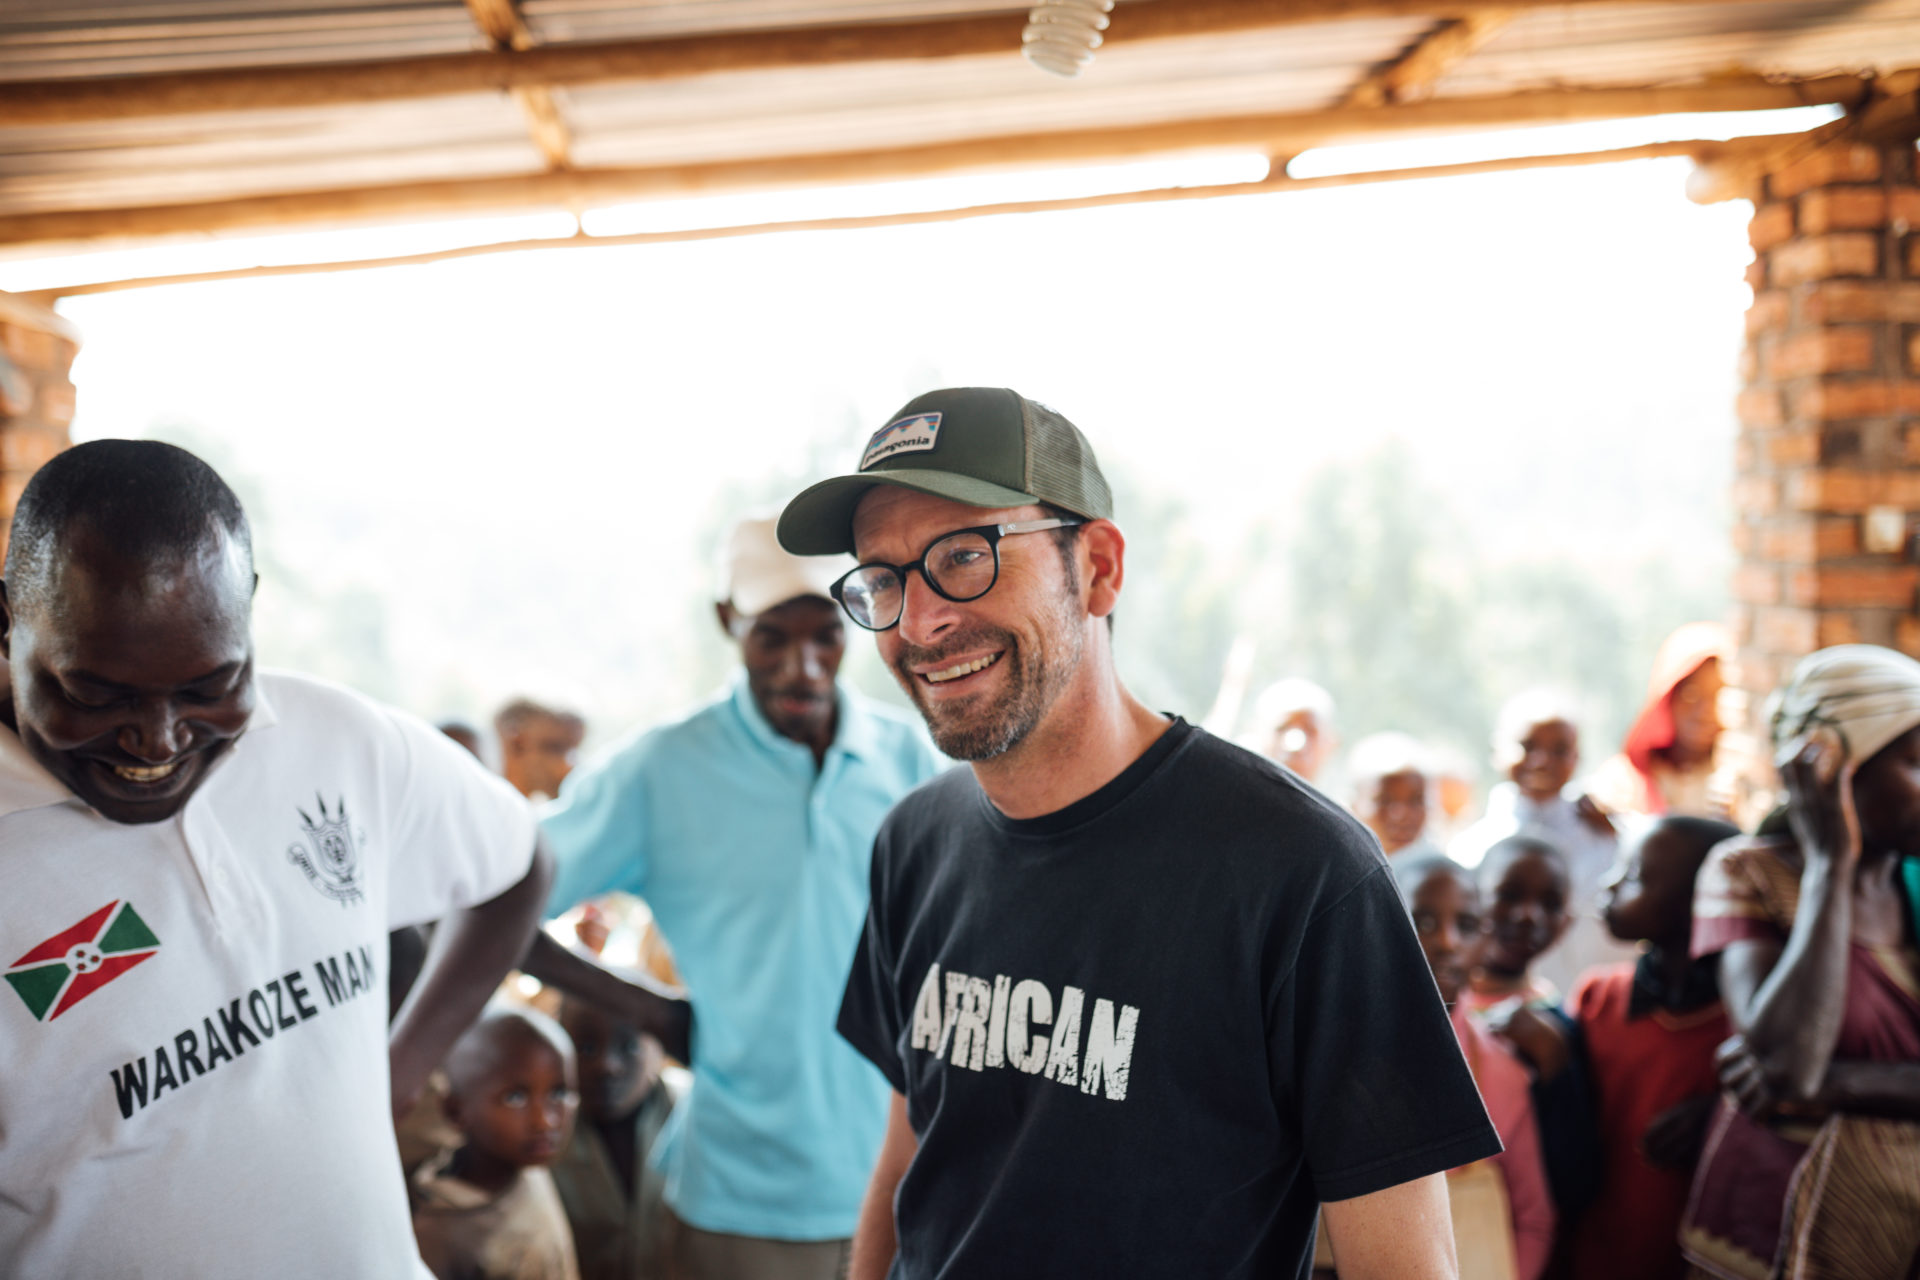 Jonathan Robinson started his company with hopes to make a difference in the lives of small-scale coffee farmers in Africa.